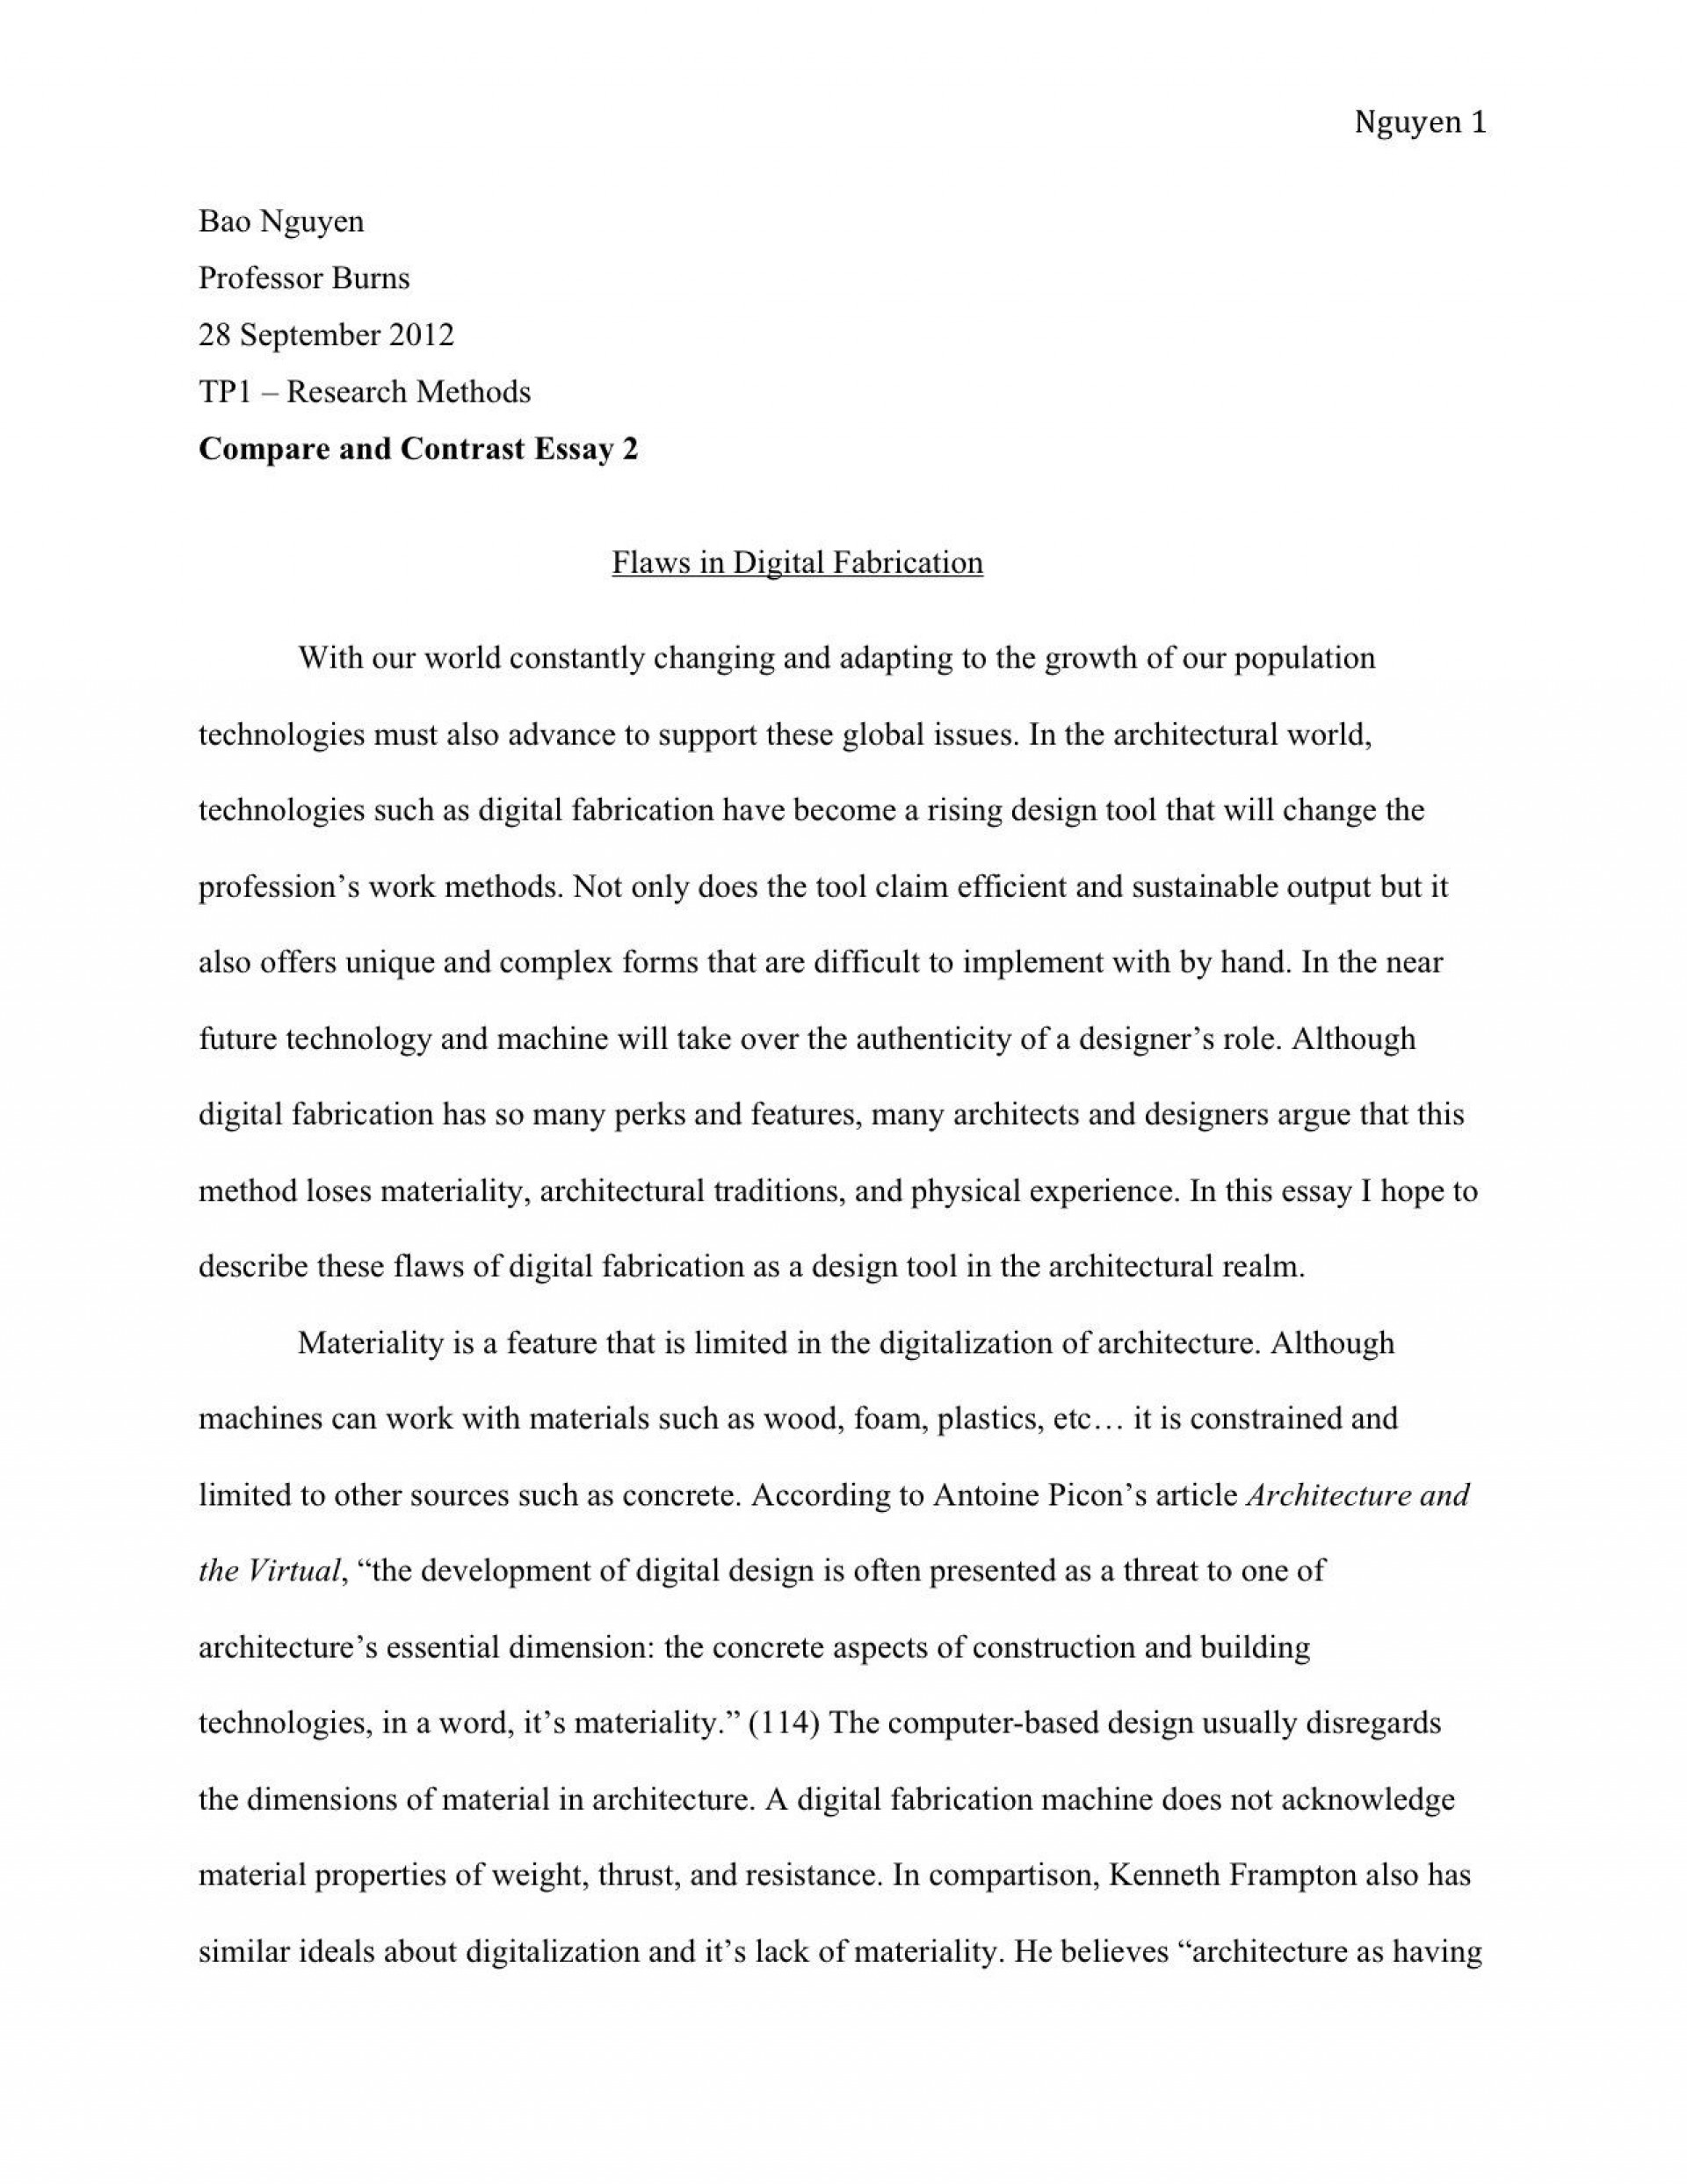 002 Essay Example Movie Review Name Examples Refrence Mulan Disney Princess Aesthetics Basics How To Write Film Paper For College Analysis Stirring A Samples 1920